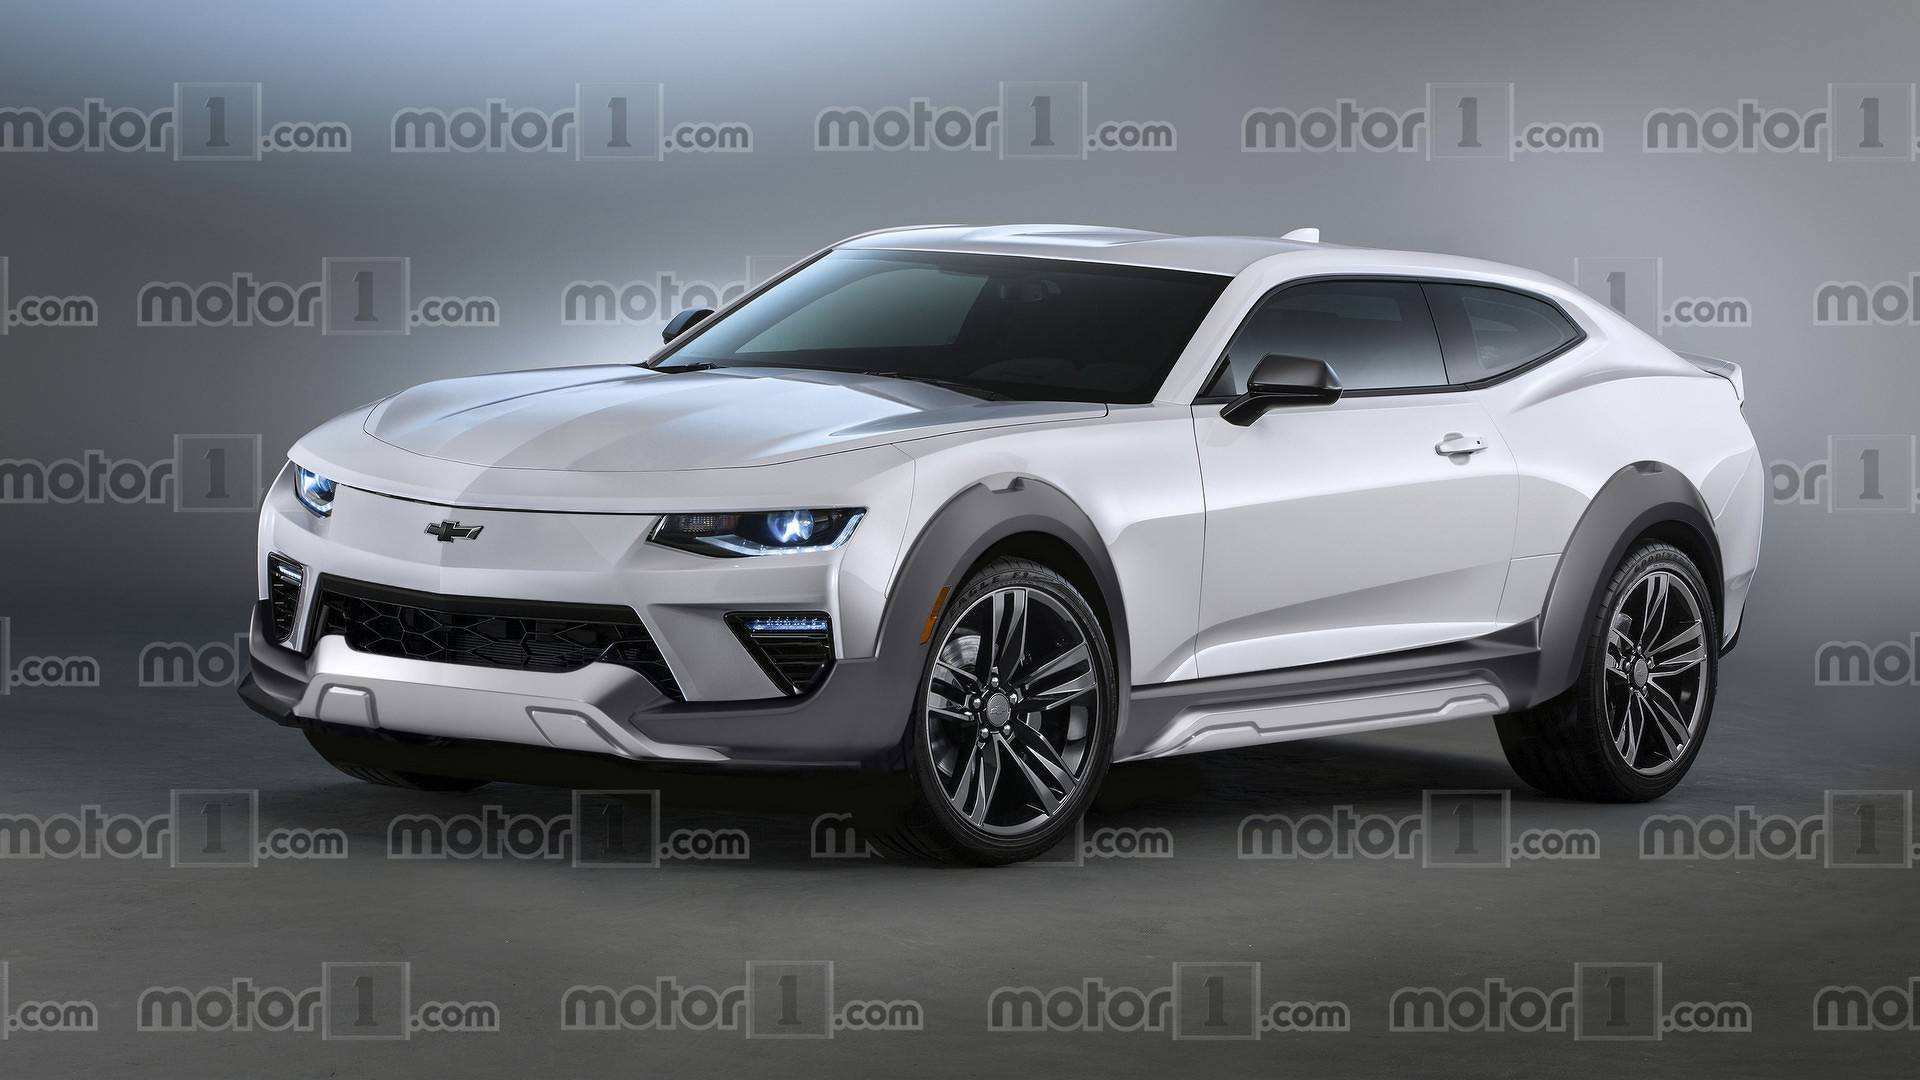 60 All New 2020 Chevrolet Camaro Redesign by 2020 Chevrolet Camaro